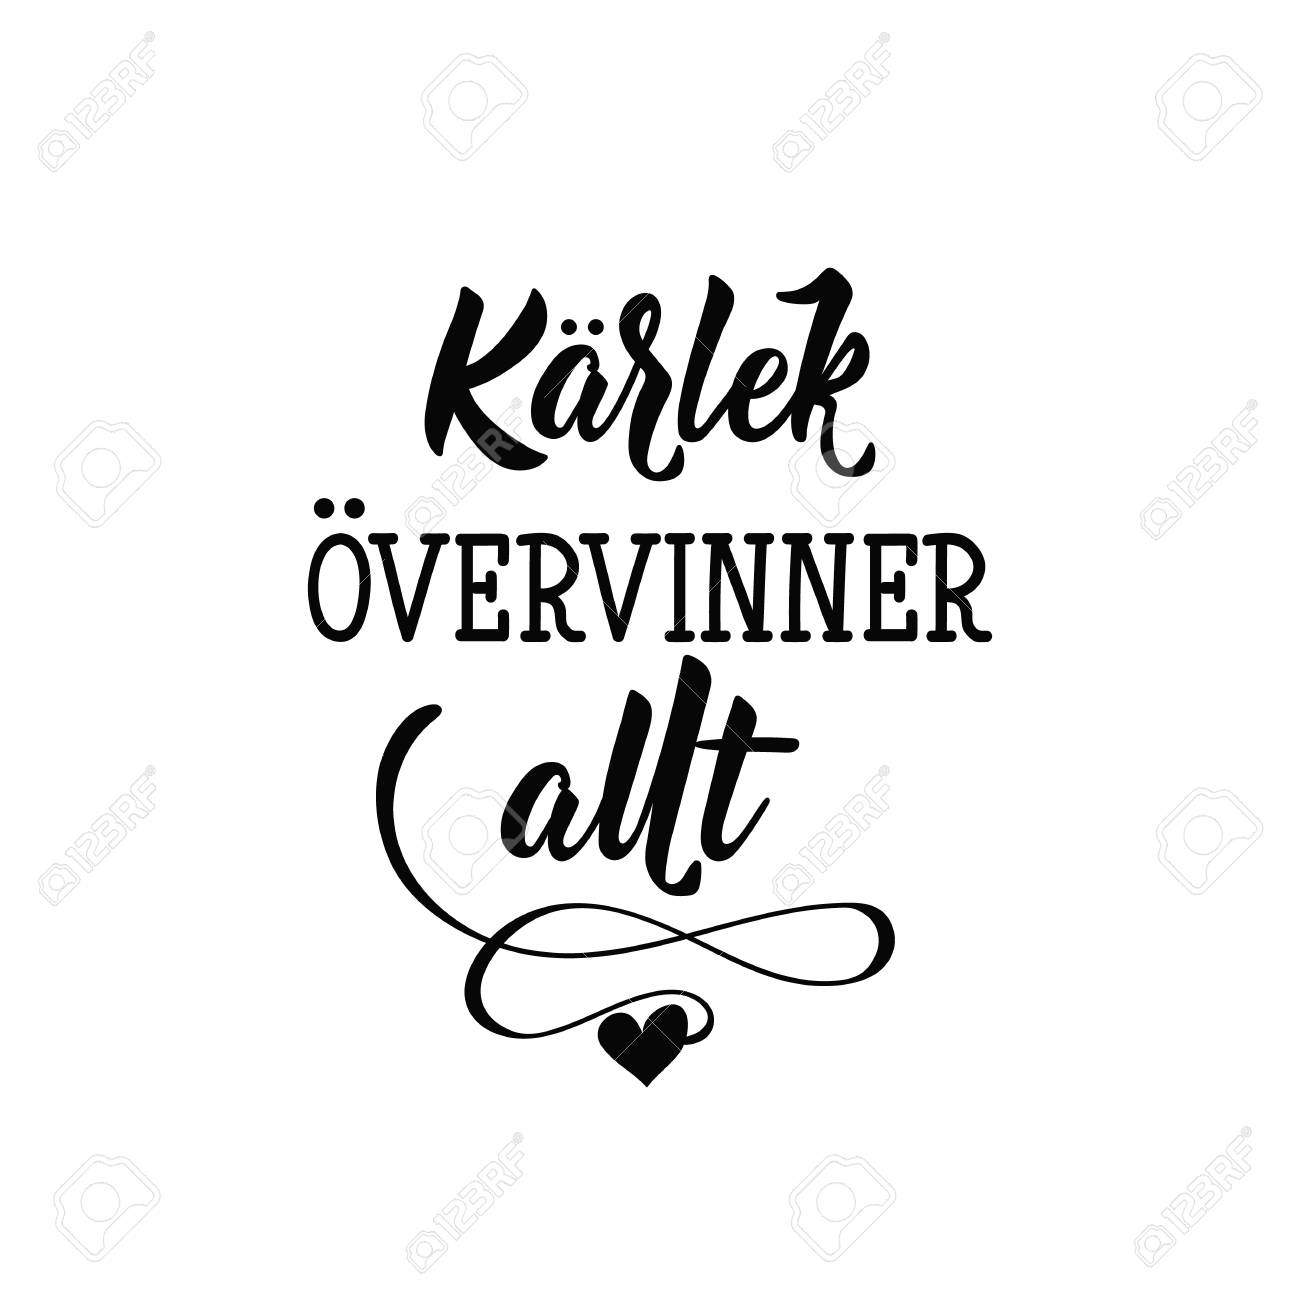 K Modern Calligraphy Swedish Text Love Conquers All Lettering Vector Illustration Element For Flyers Banner And Posters Modern Calligraphy K Rlek Vervinner Allt